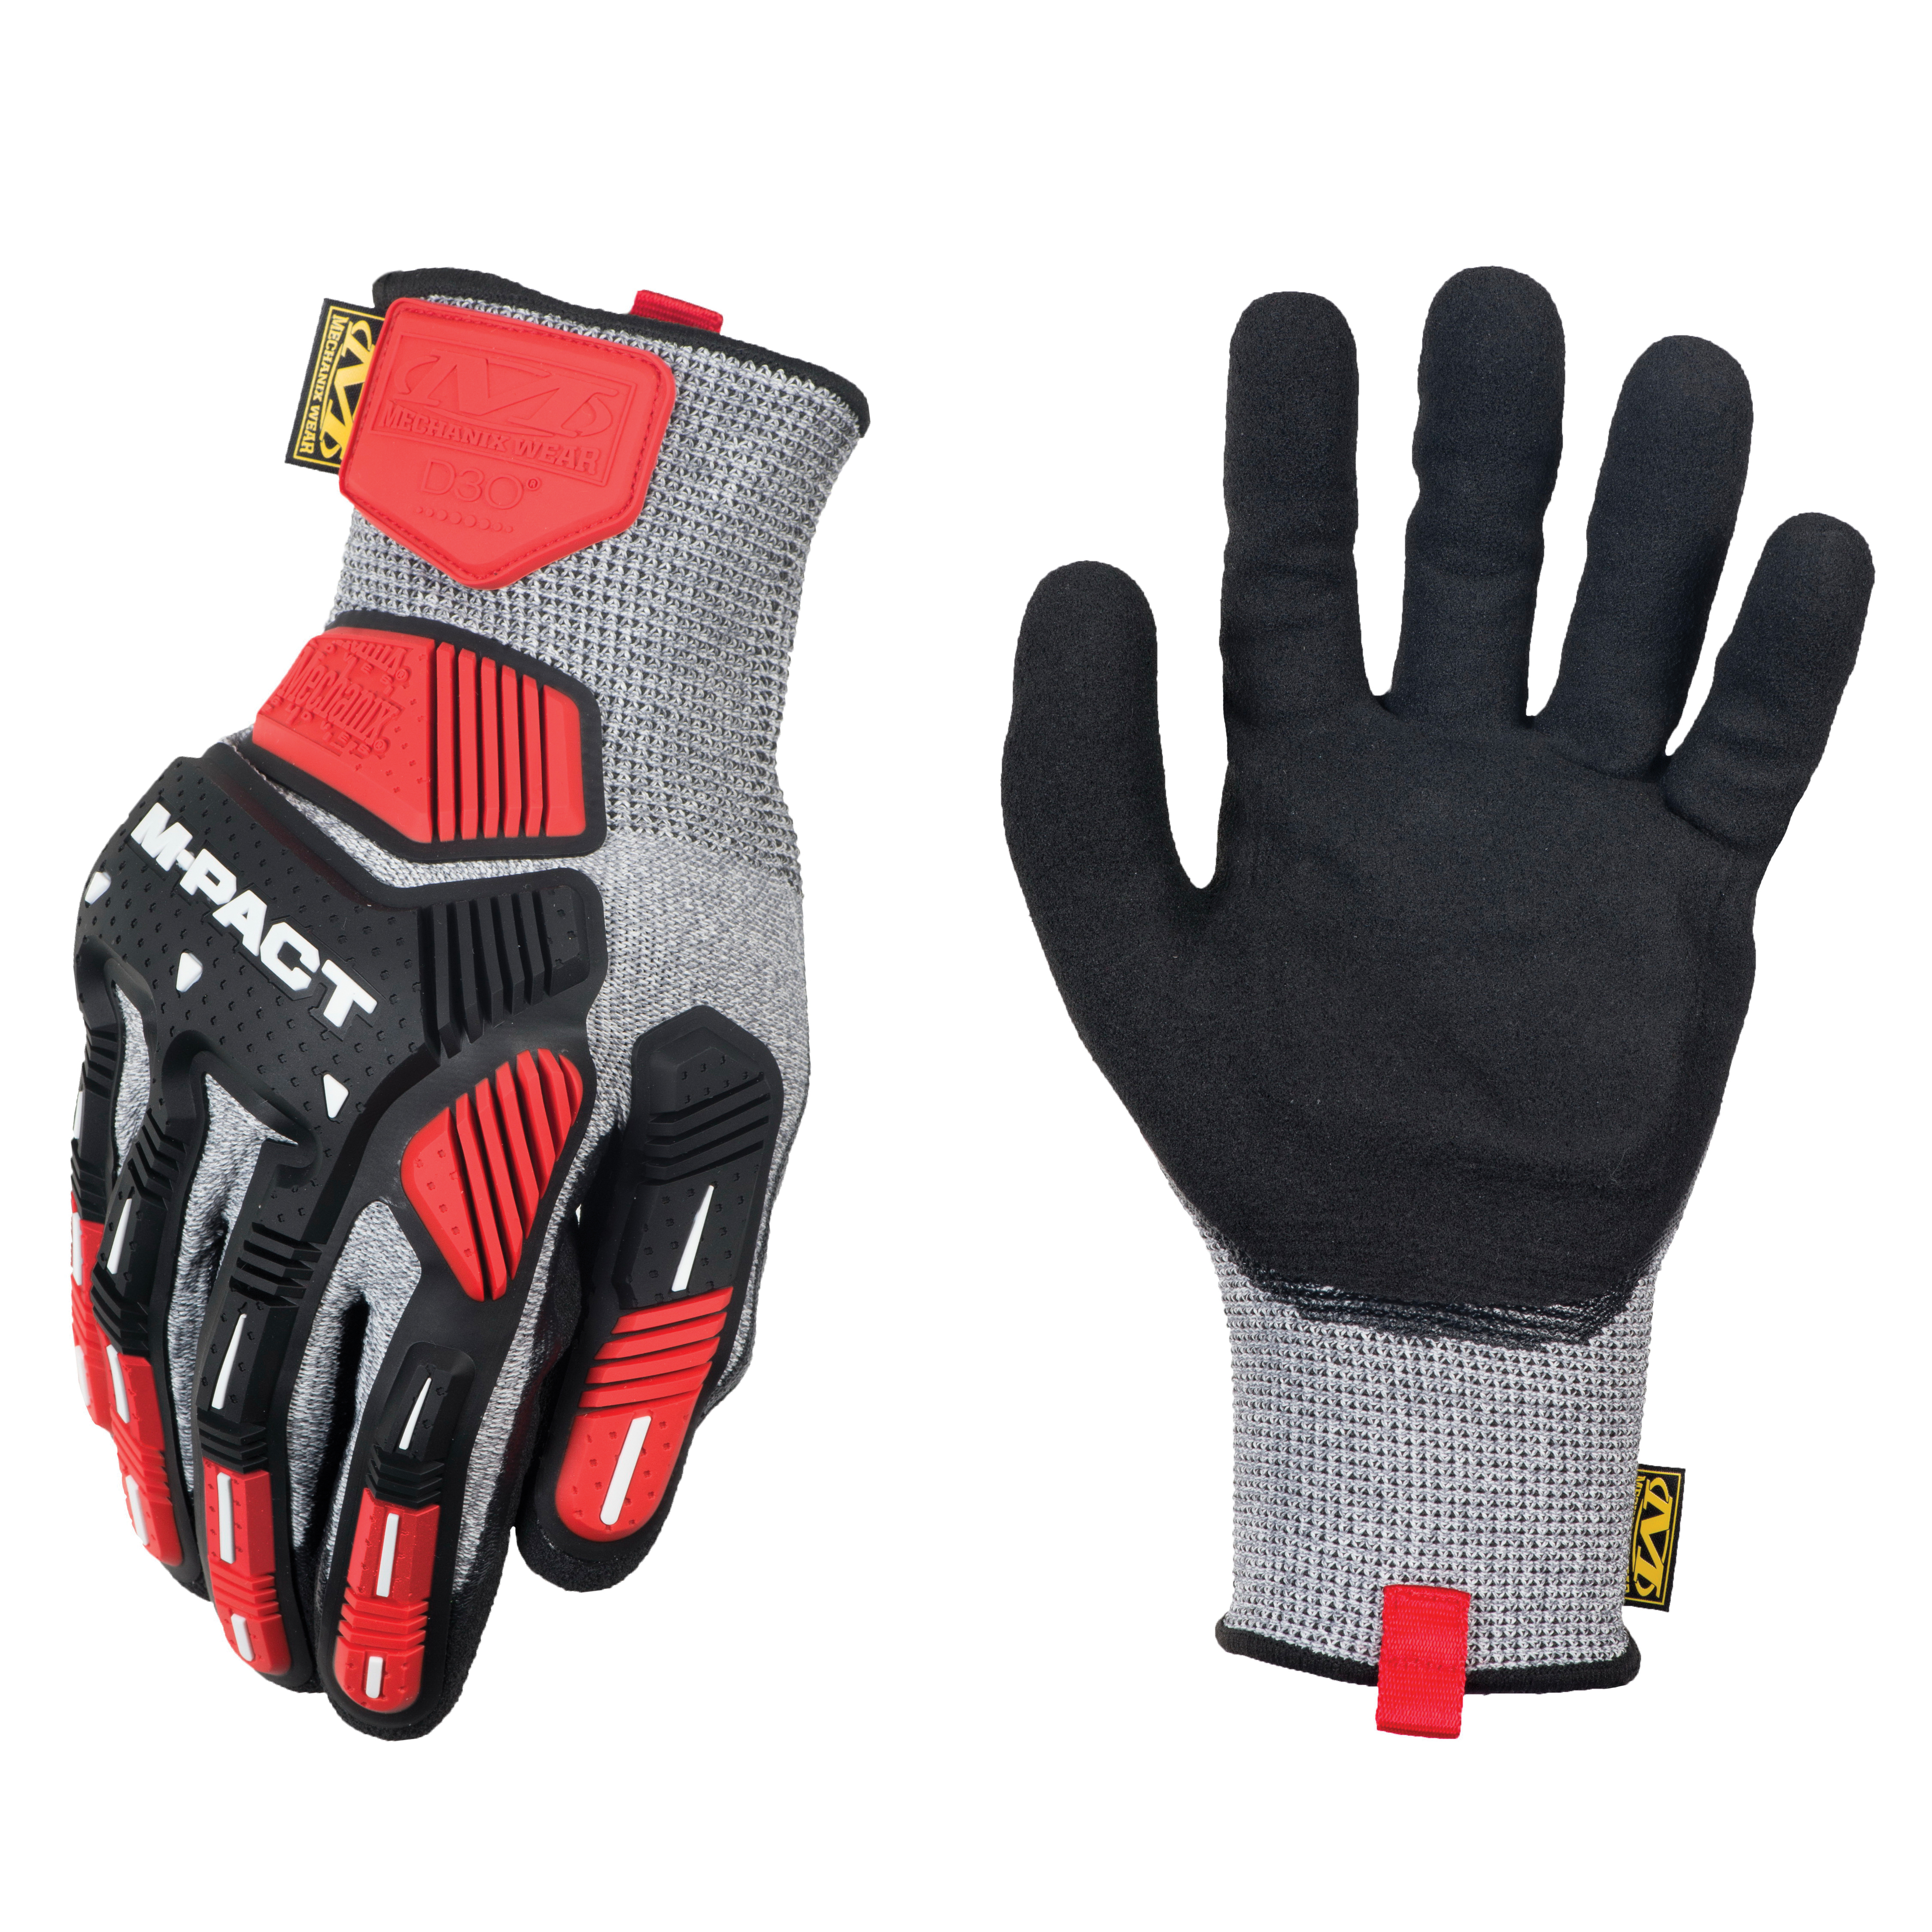 Mechanix Wear® KHD-CR-008 ORHD® Knit CR5A5 Cut Resistant Gloves, S/SZ 8, Nitrile/Textured Coating